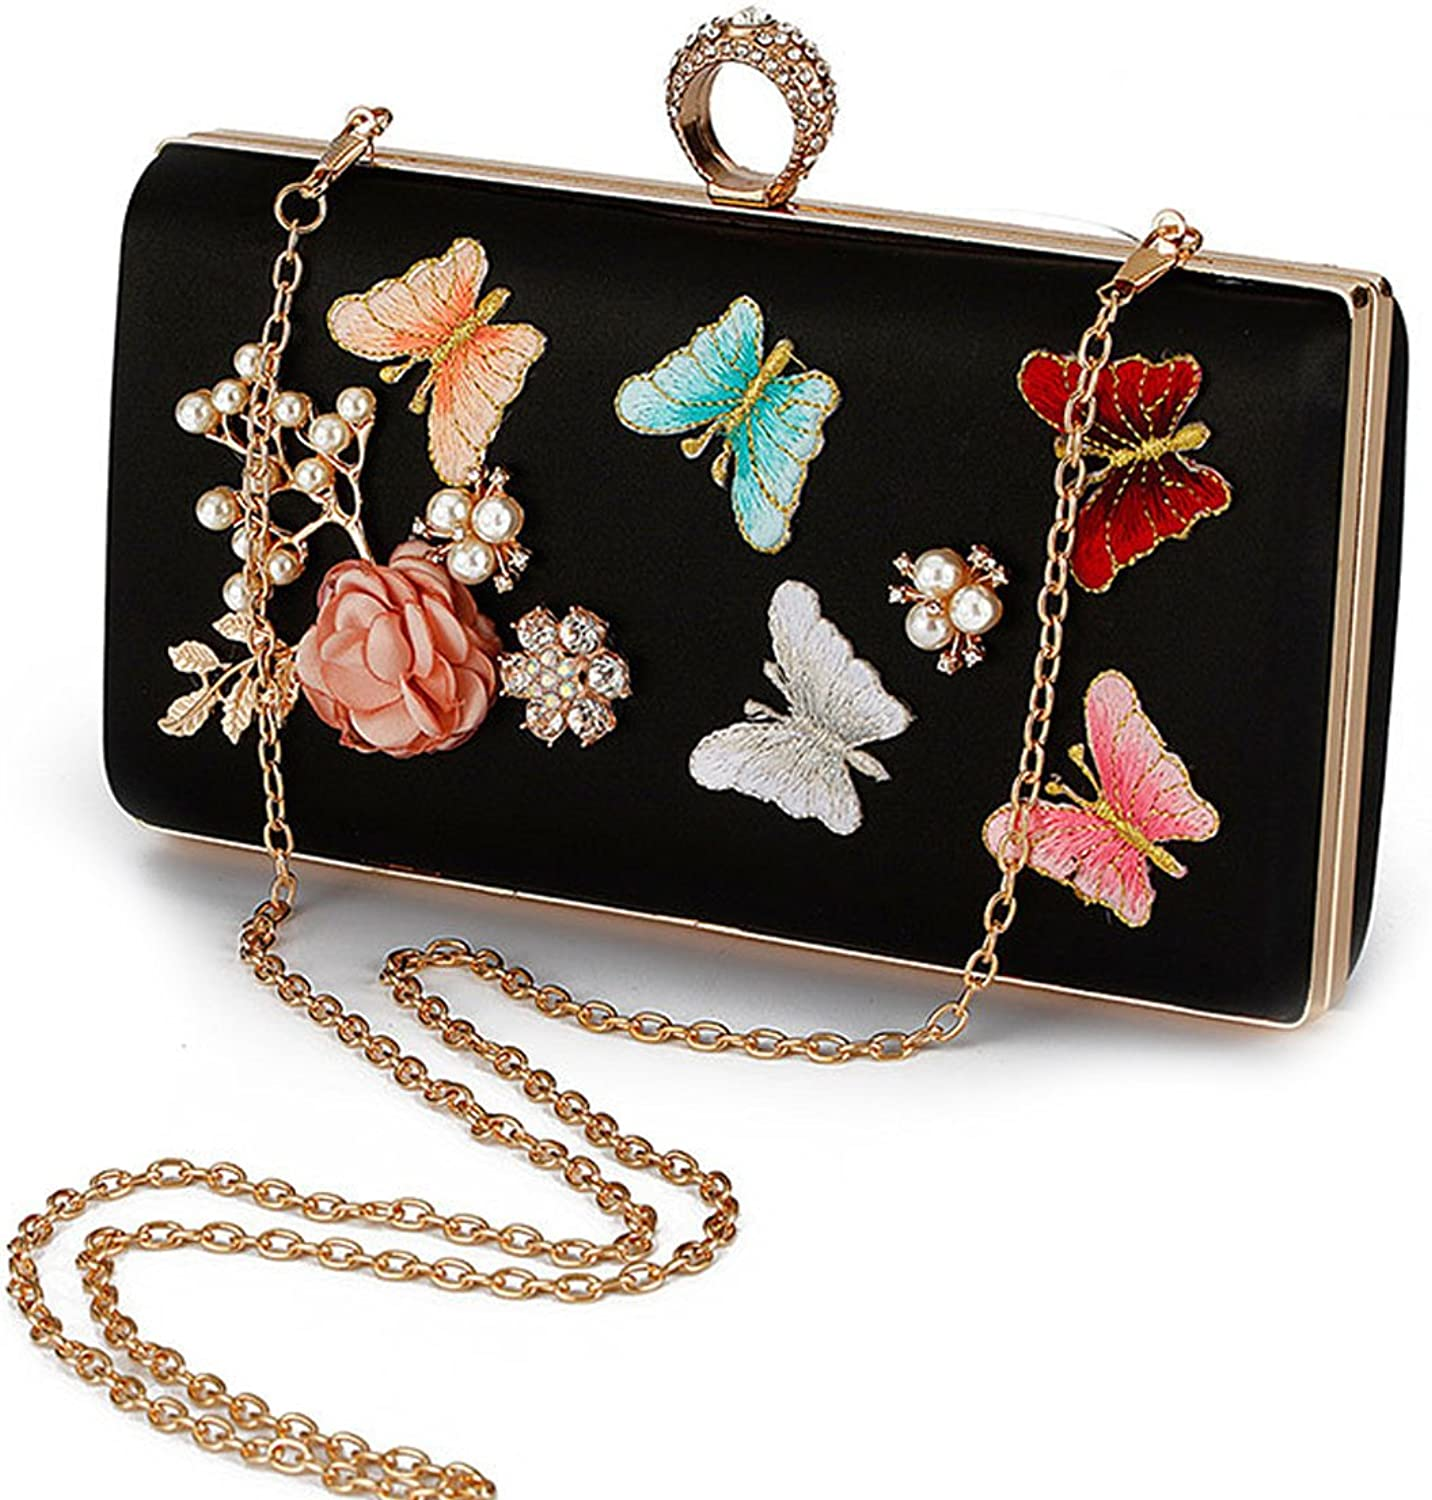 Flada Flower Evening Bag Women's Silk Clutches Purse for Wedding Party